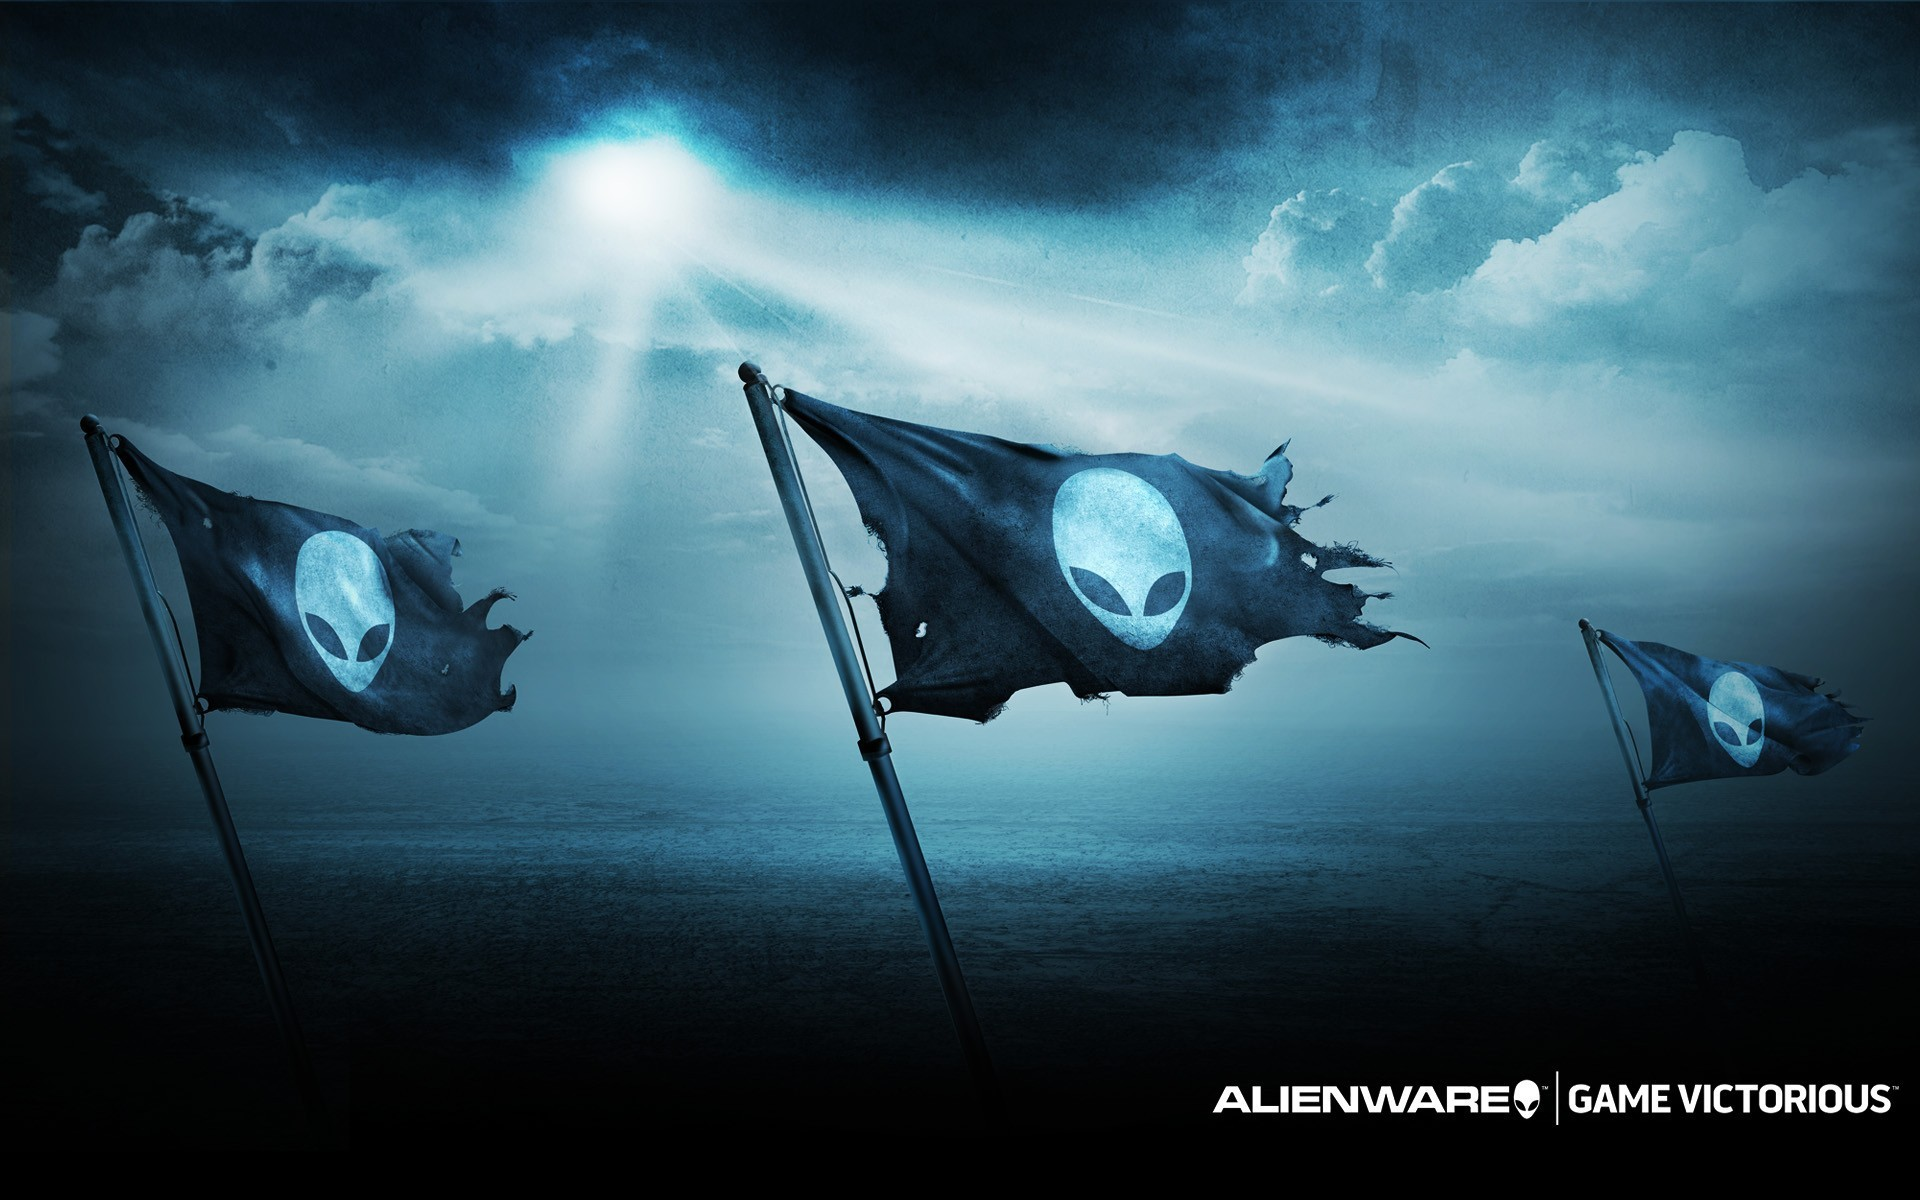 1920x1200 Pirate flag with an alien